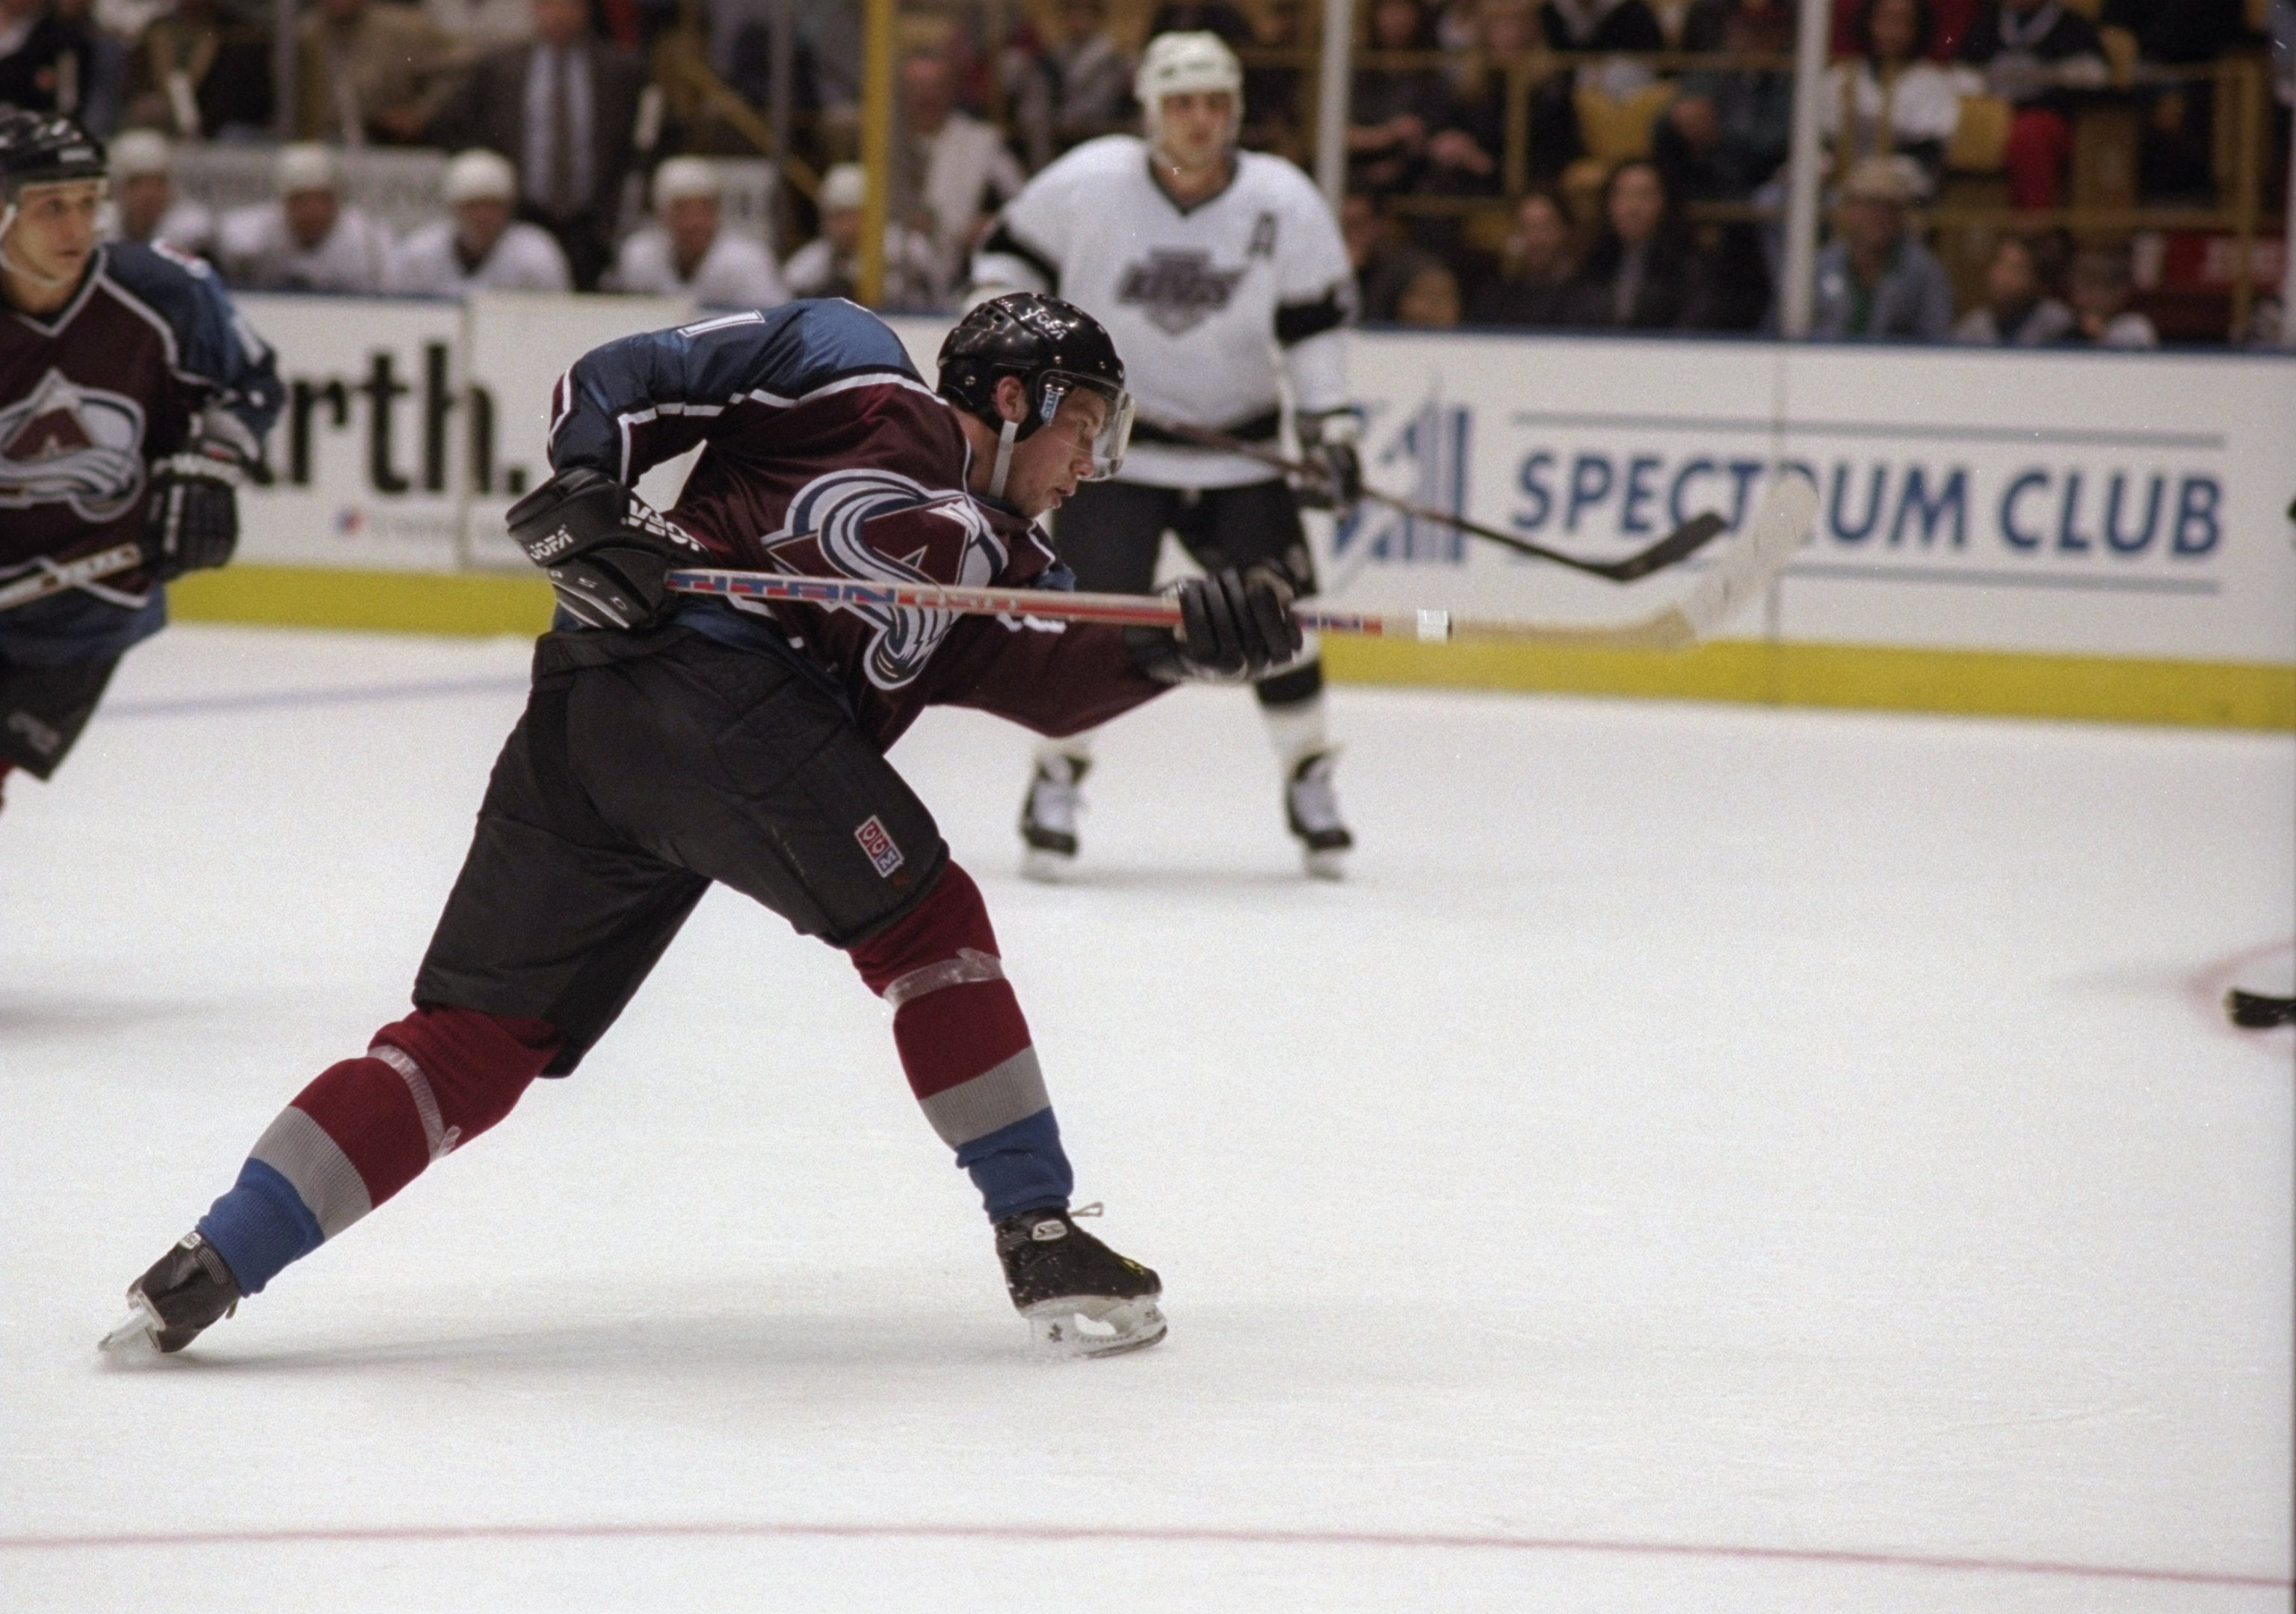 7 Dec 1996: Center Peter Forsberg of the Colorado Avalanche in action during a game against the Los Angeles Kings at the Great Western Forum in Inglewood, California. The Kings won the game 4-2. Mandatory Credit: Elsa Hasch /Allsport